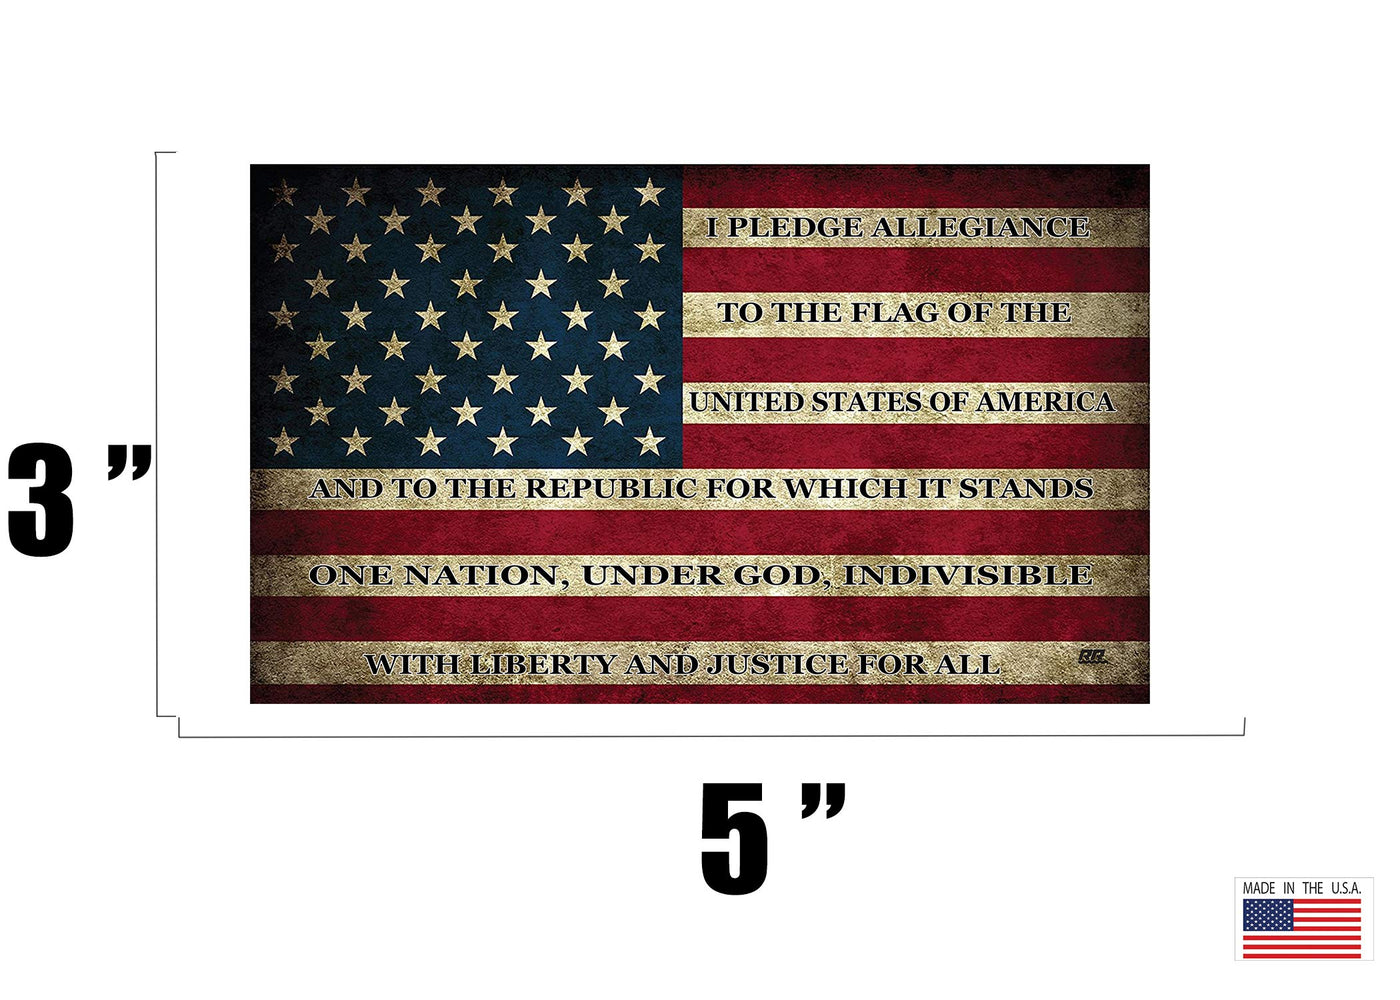 Rogue River Tactical USA Flag Sticker Bumper Car Decal Gift Patriotic American Worn United States Pledge of Allegiance 3x5 Inch